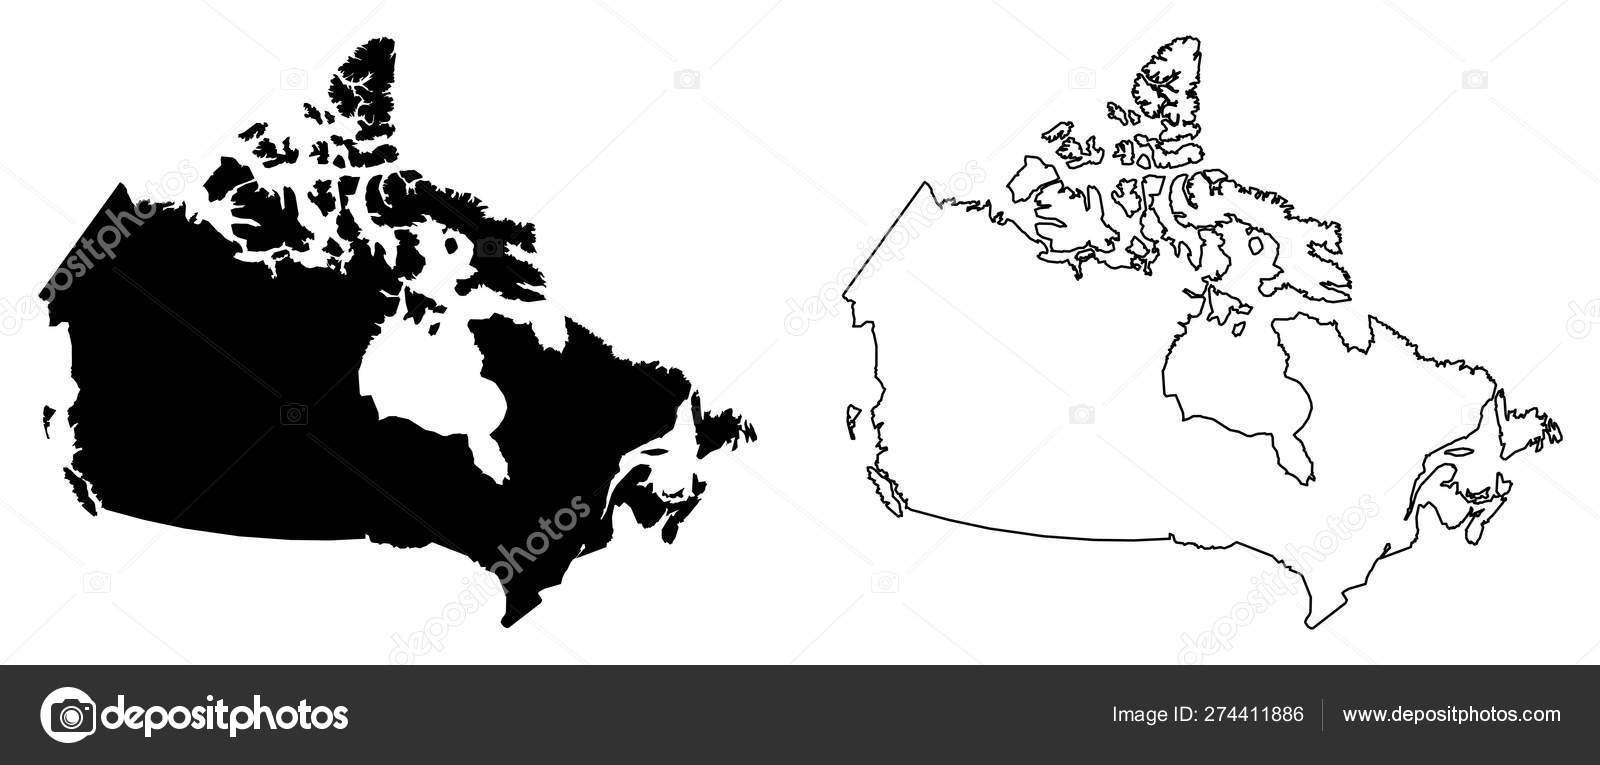 Map Of Canada Simple.Simple Only Sharp Corners Map Of Canada Vector Drawing Mercat